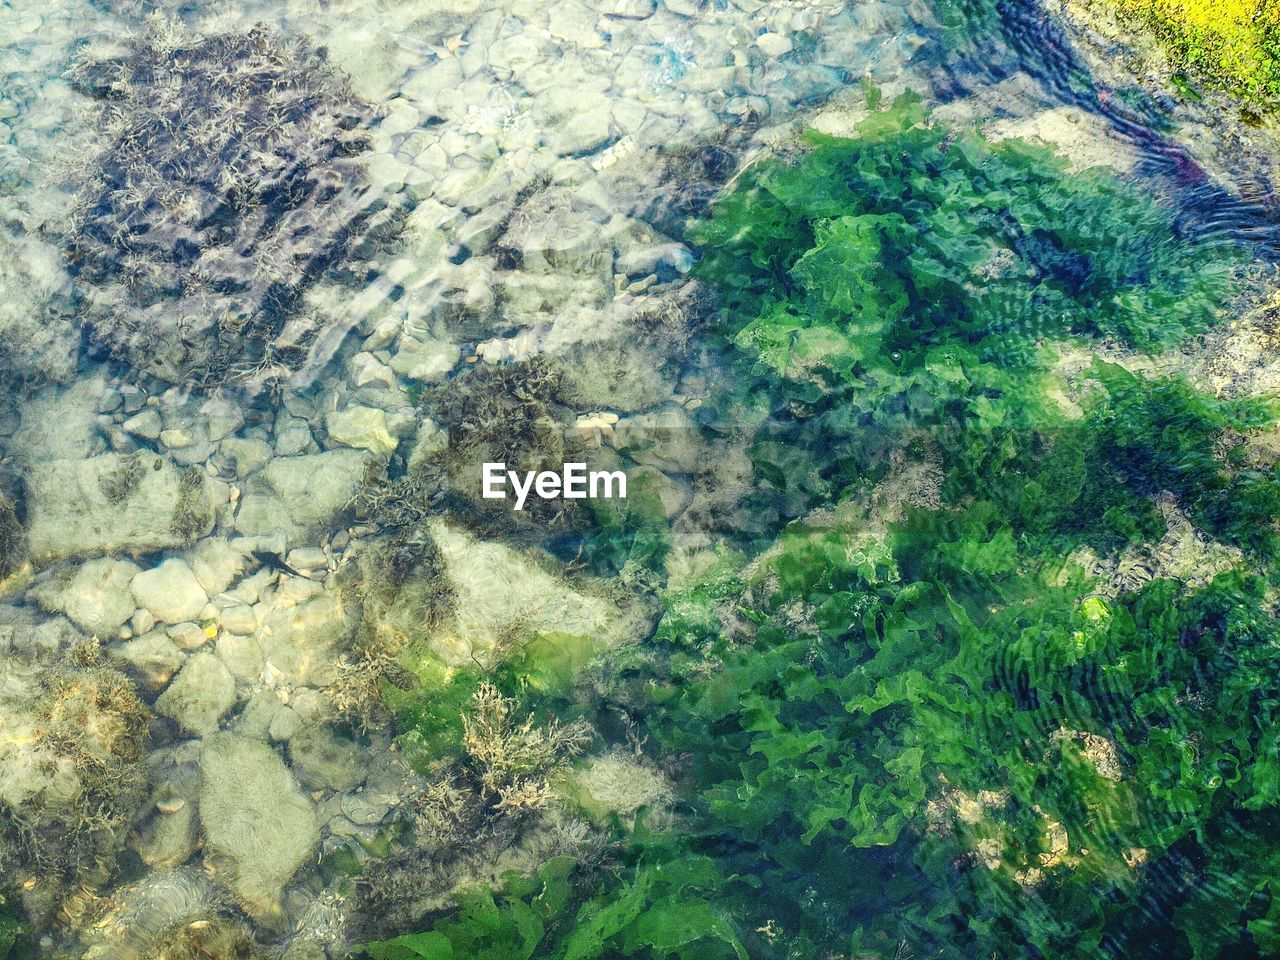 backgrounds, full frame, nature, aerial view, high angle view, green color, no people, landscape, day, growth, planet earth, outdoors, beauty in nature, water, satellite view, close-up